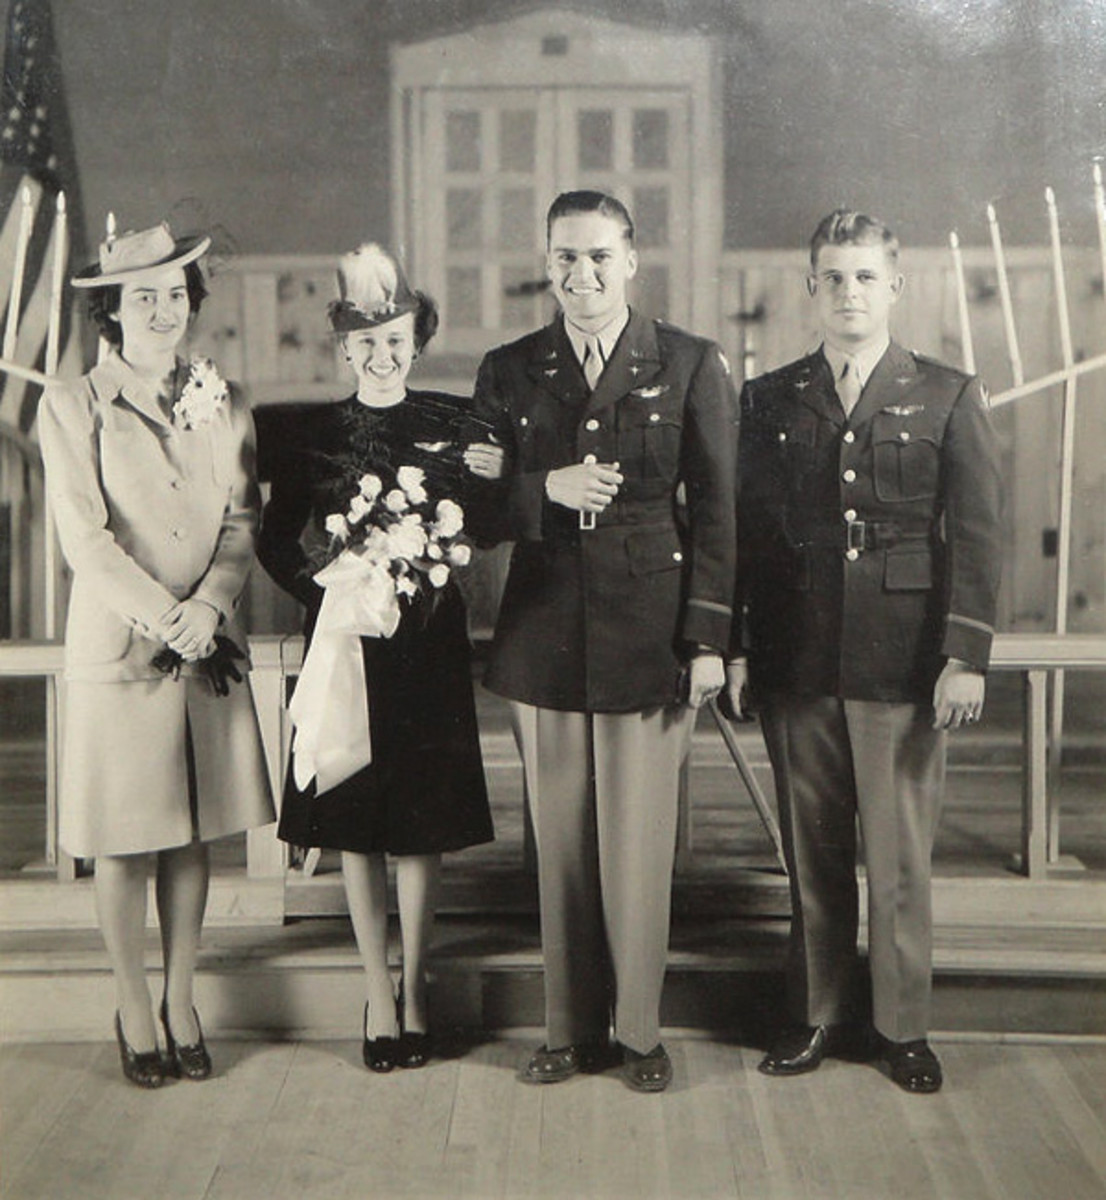 A couple who recently tied the knot during World War II.